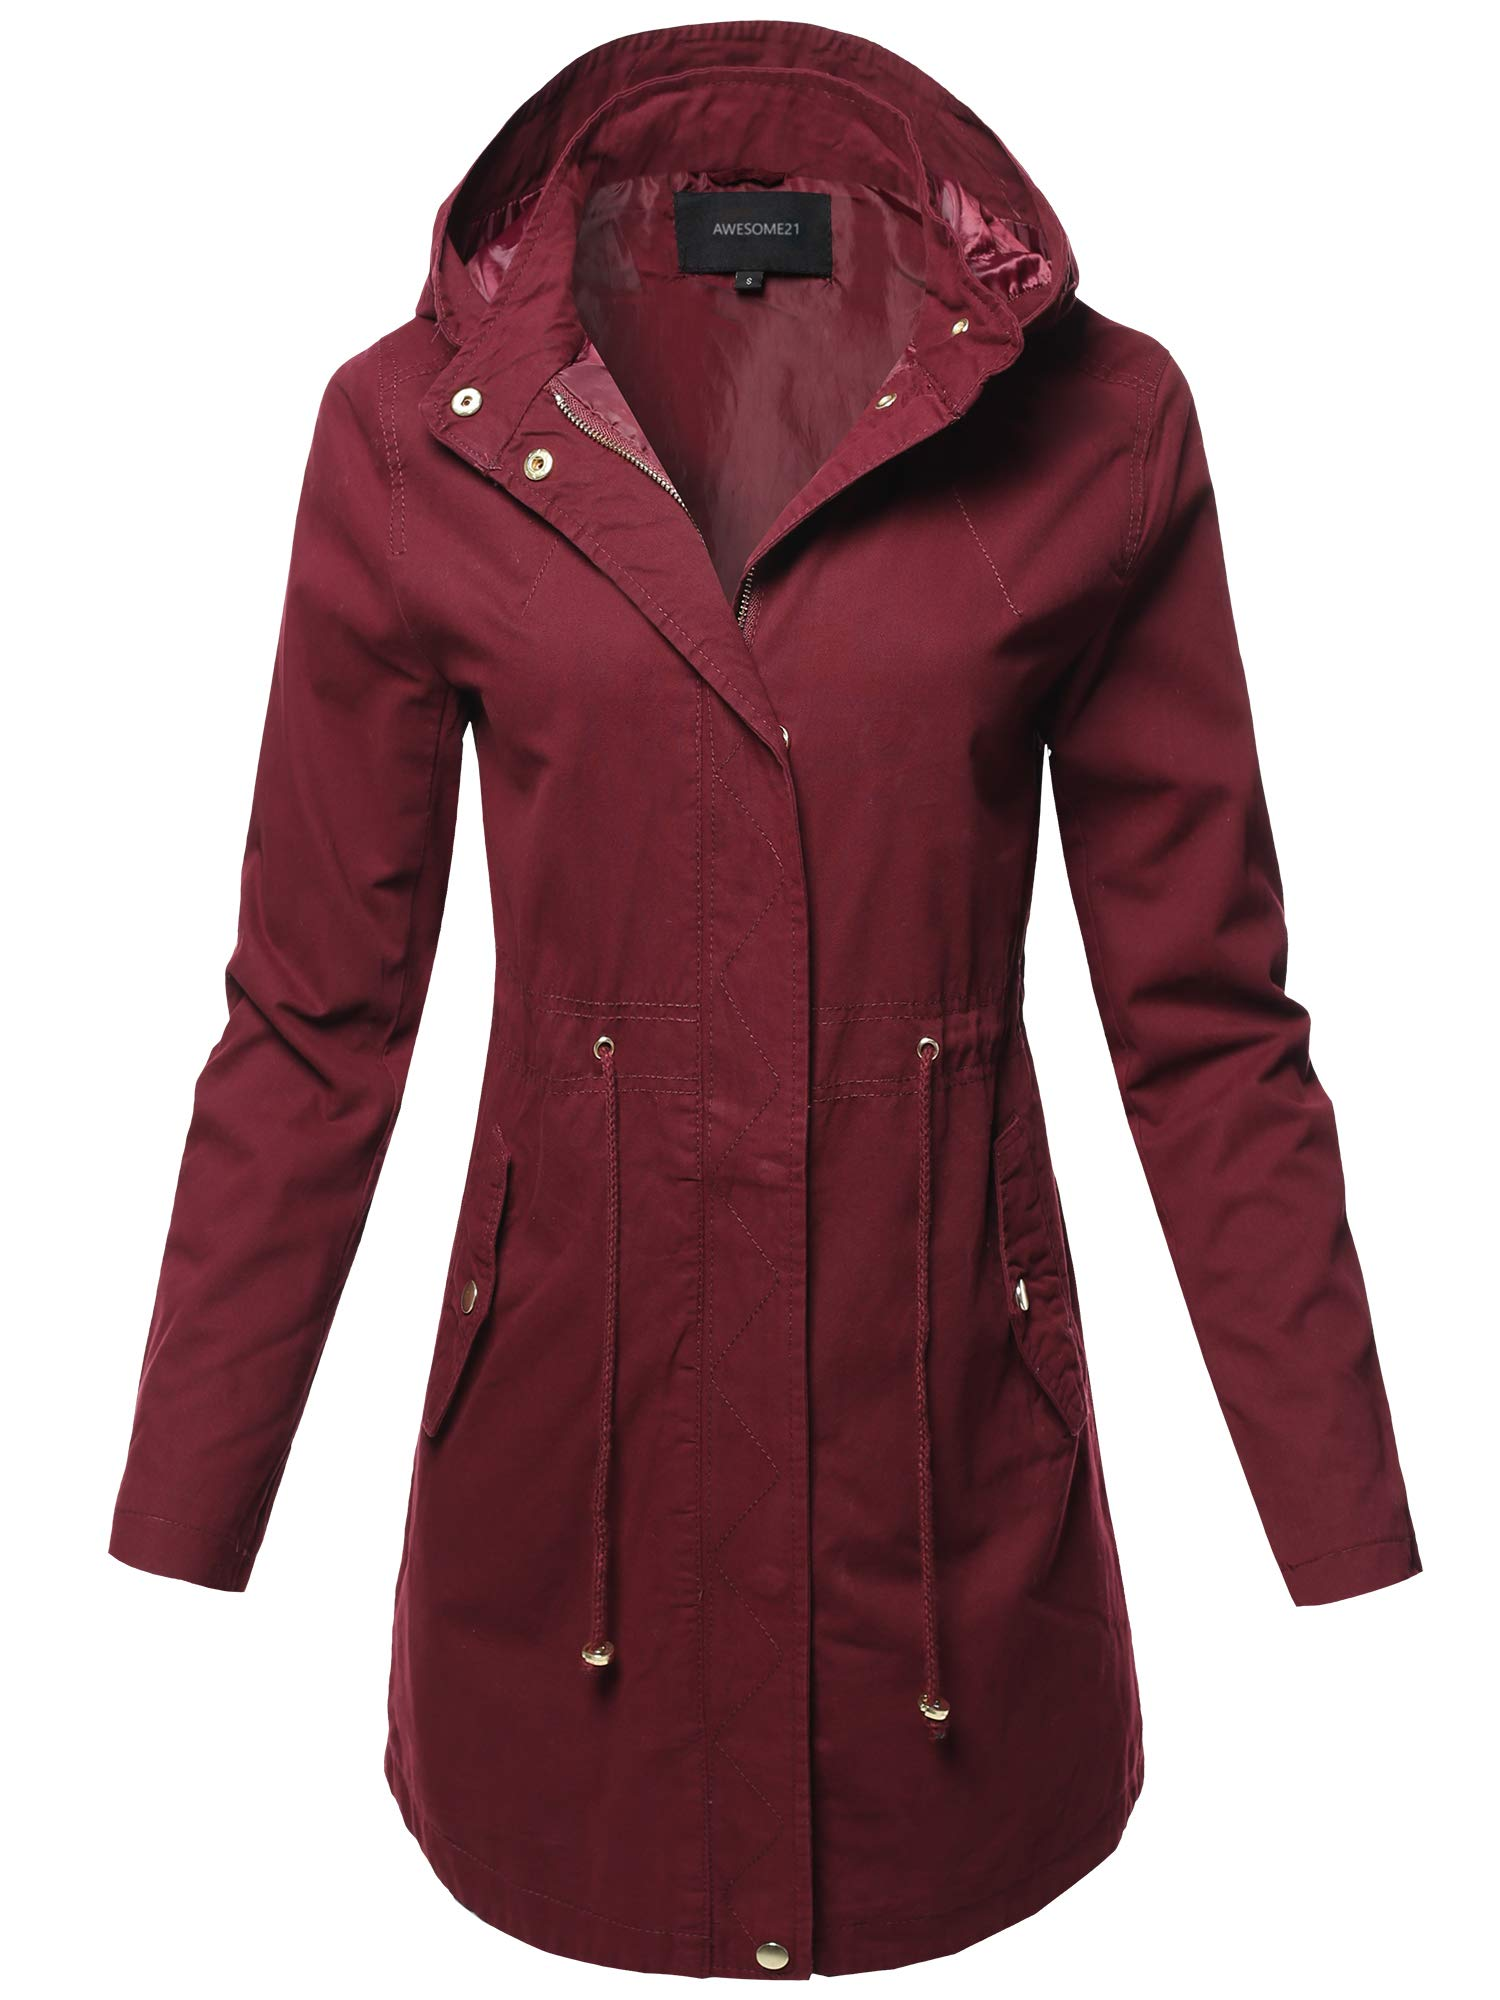 Awesome21 Casual Hooded Drawstring Military Long Length Jacket Burgundy Size L